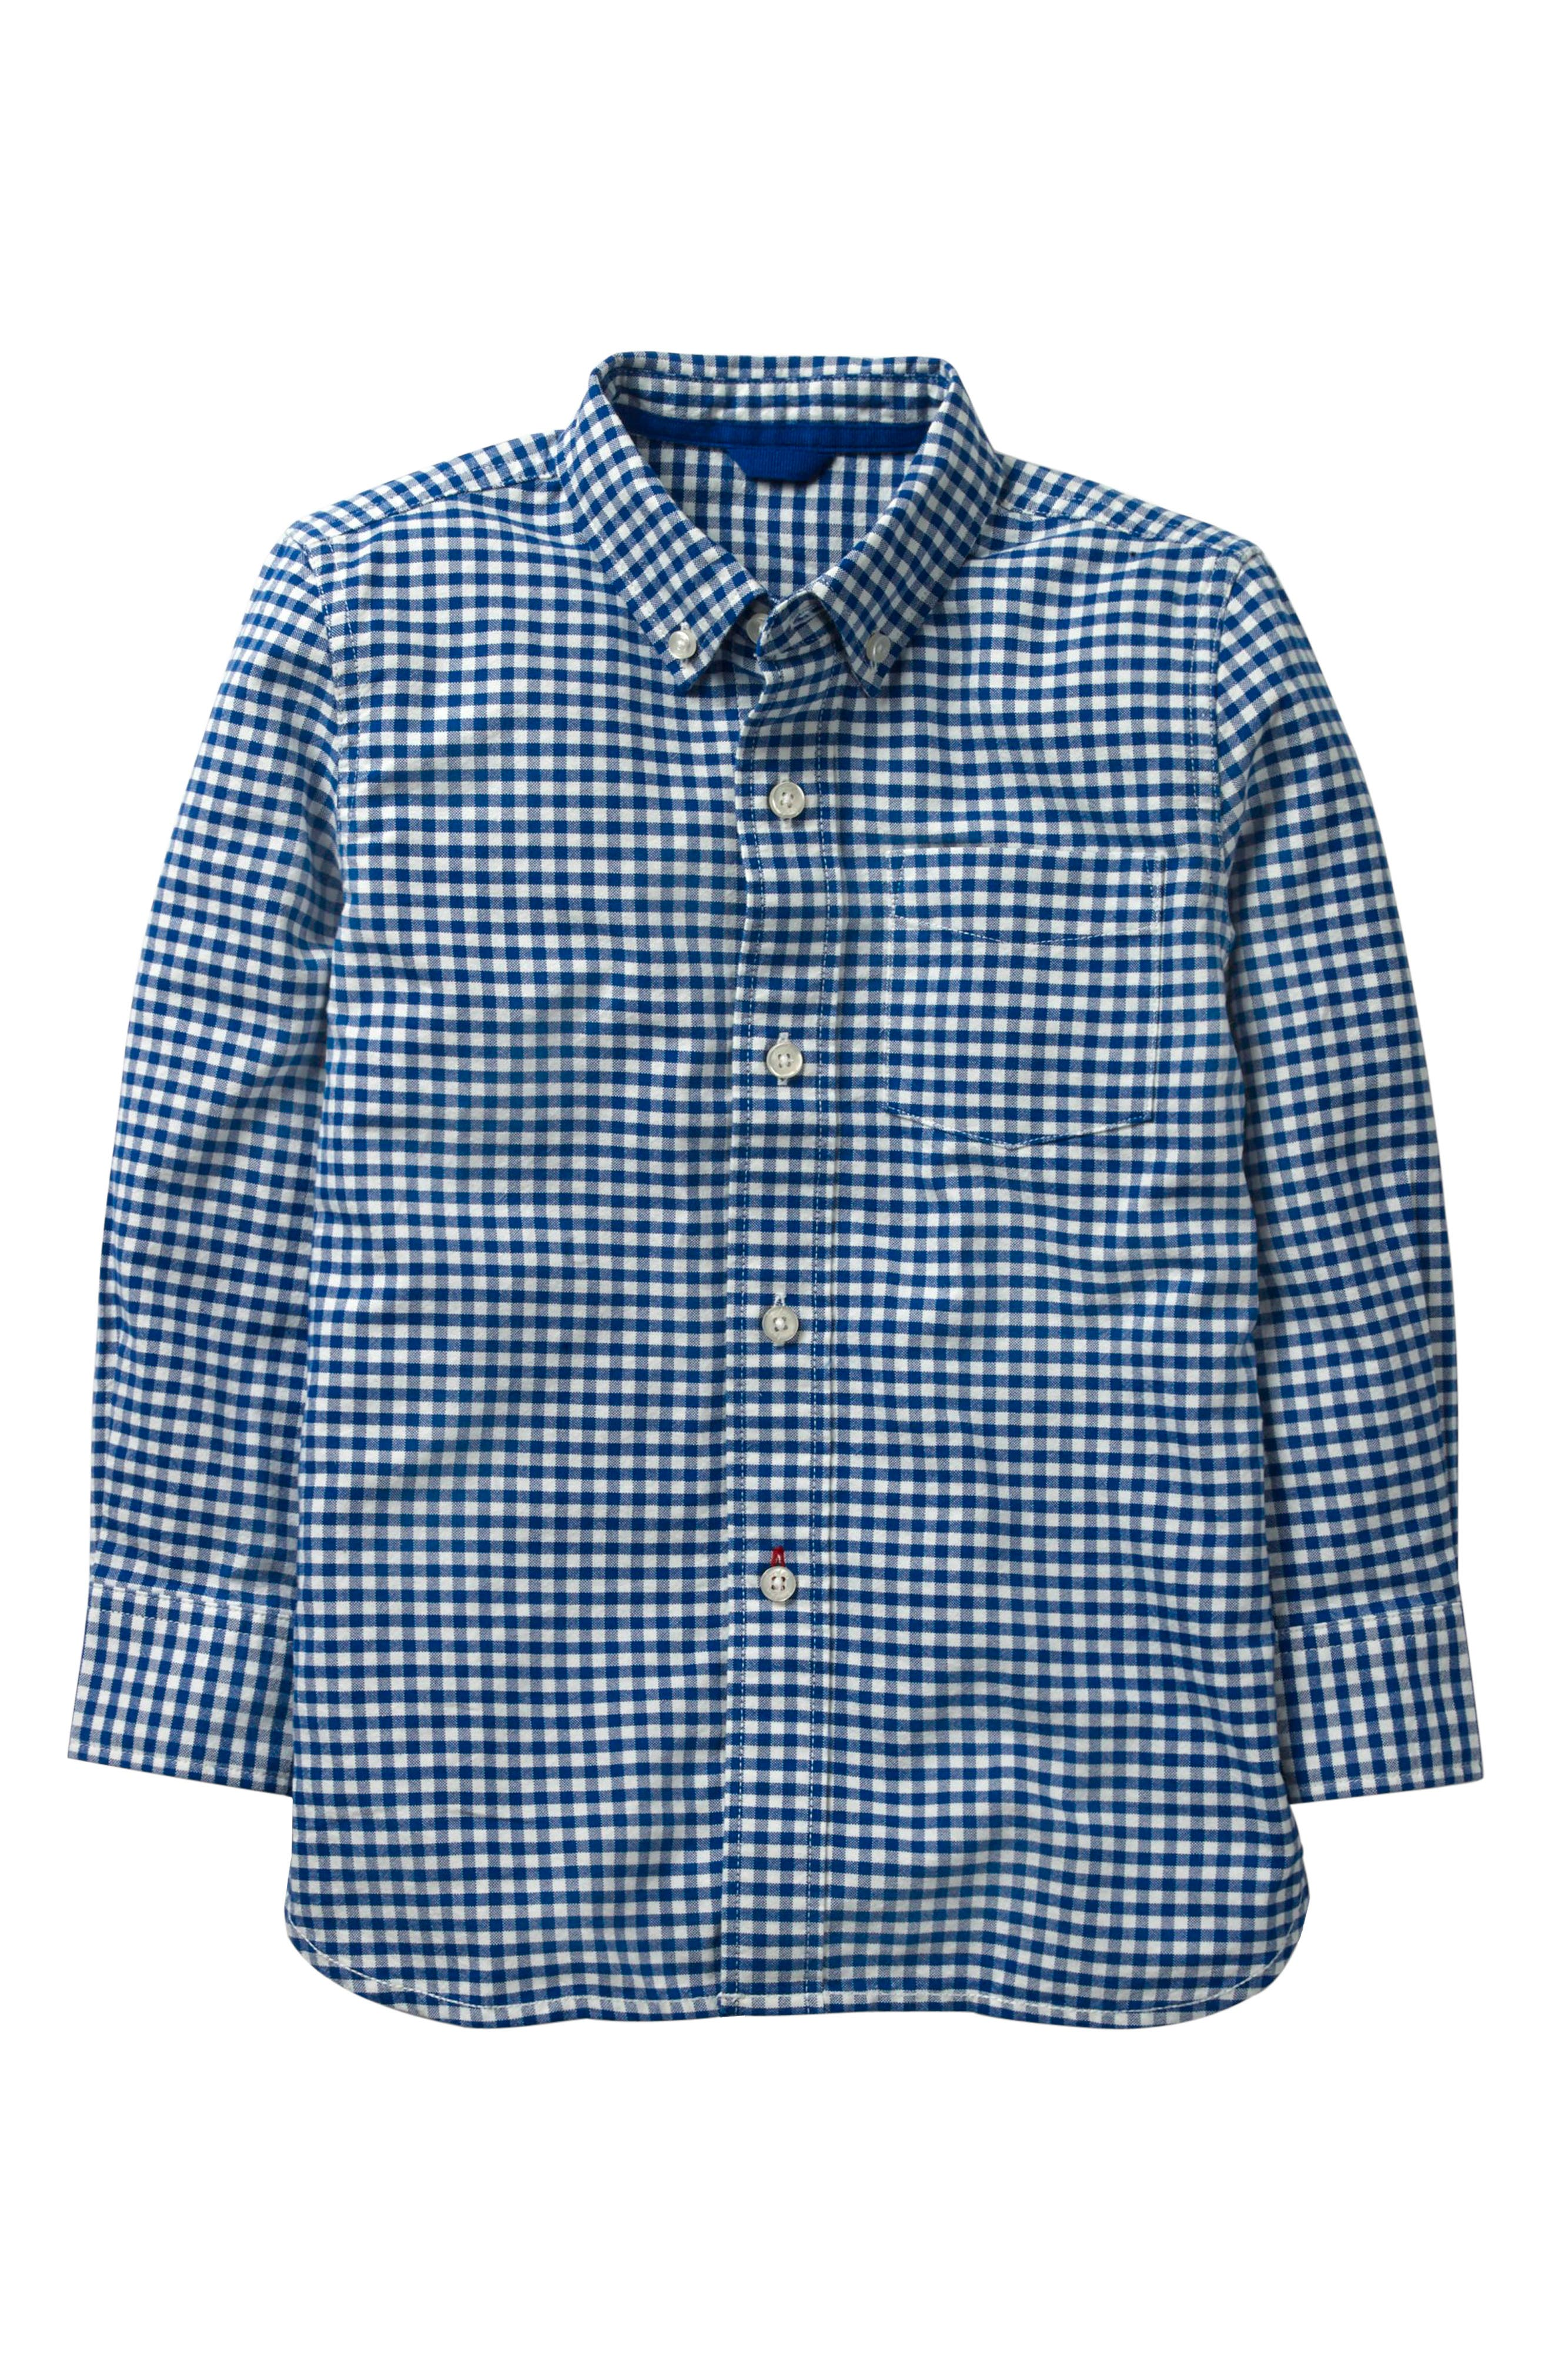 Gingham Oxford Shirt,                             Main thumbnail 1, color,                             Orion Blue Gingham